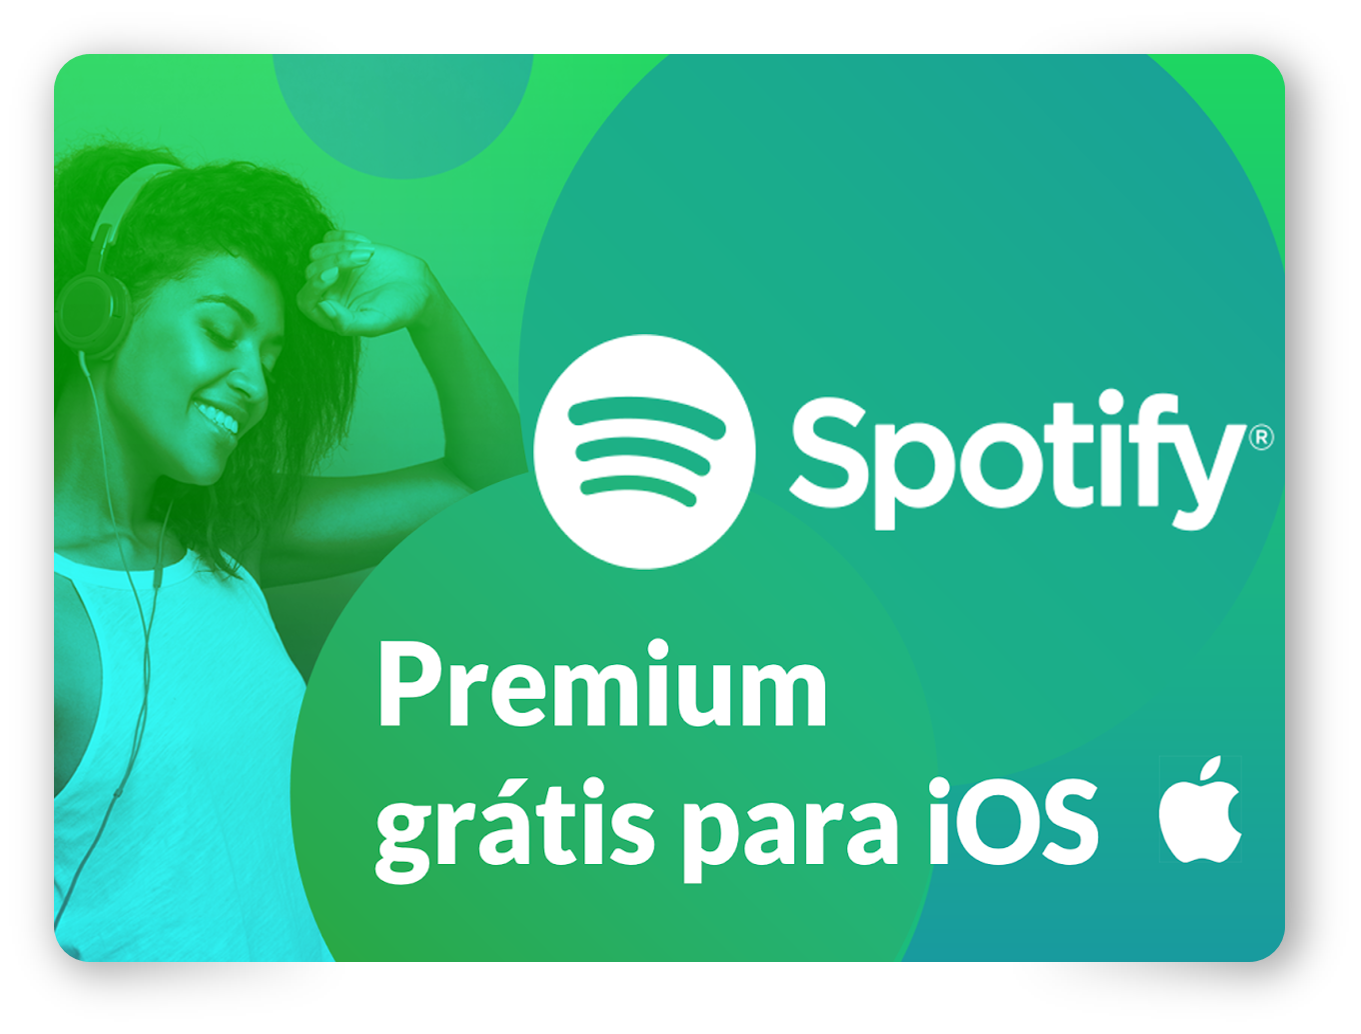 spotify craccato con appvalley